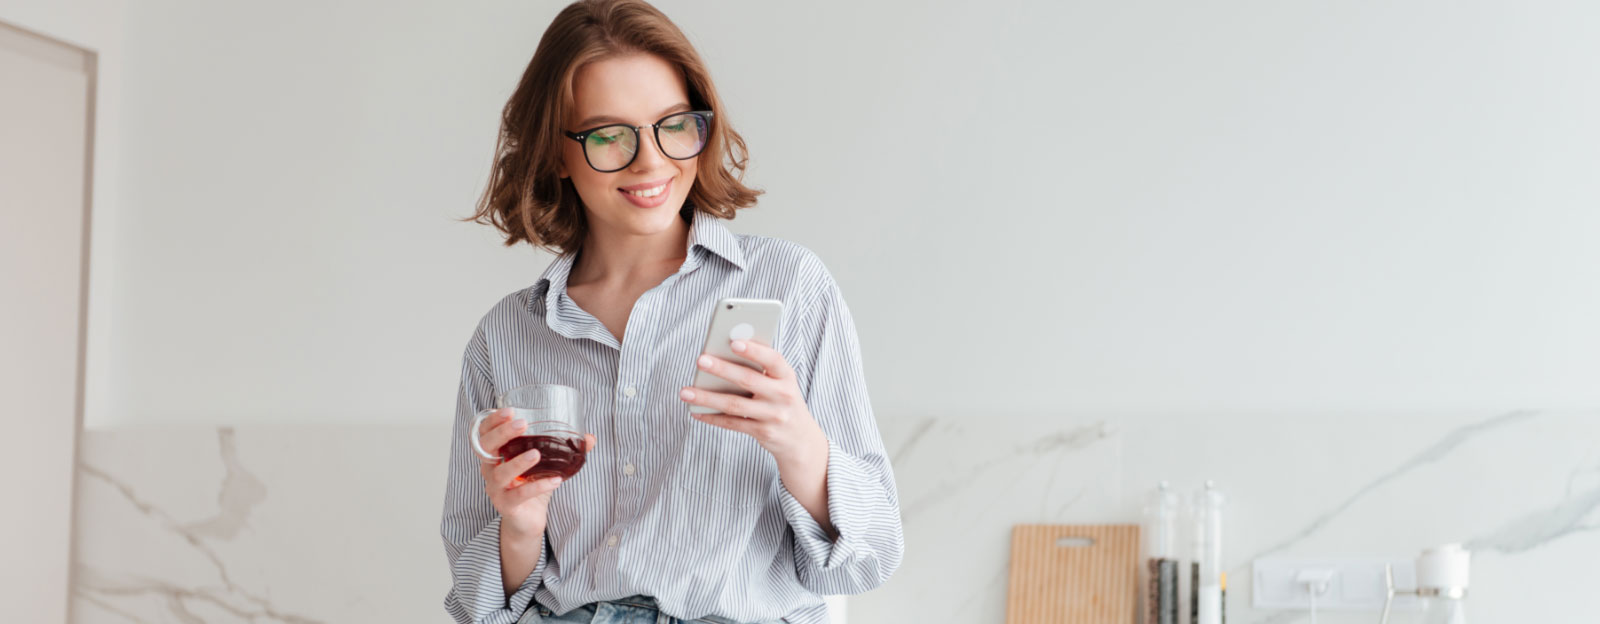 Lady checking her phone for job alerts